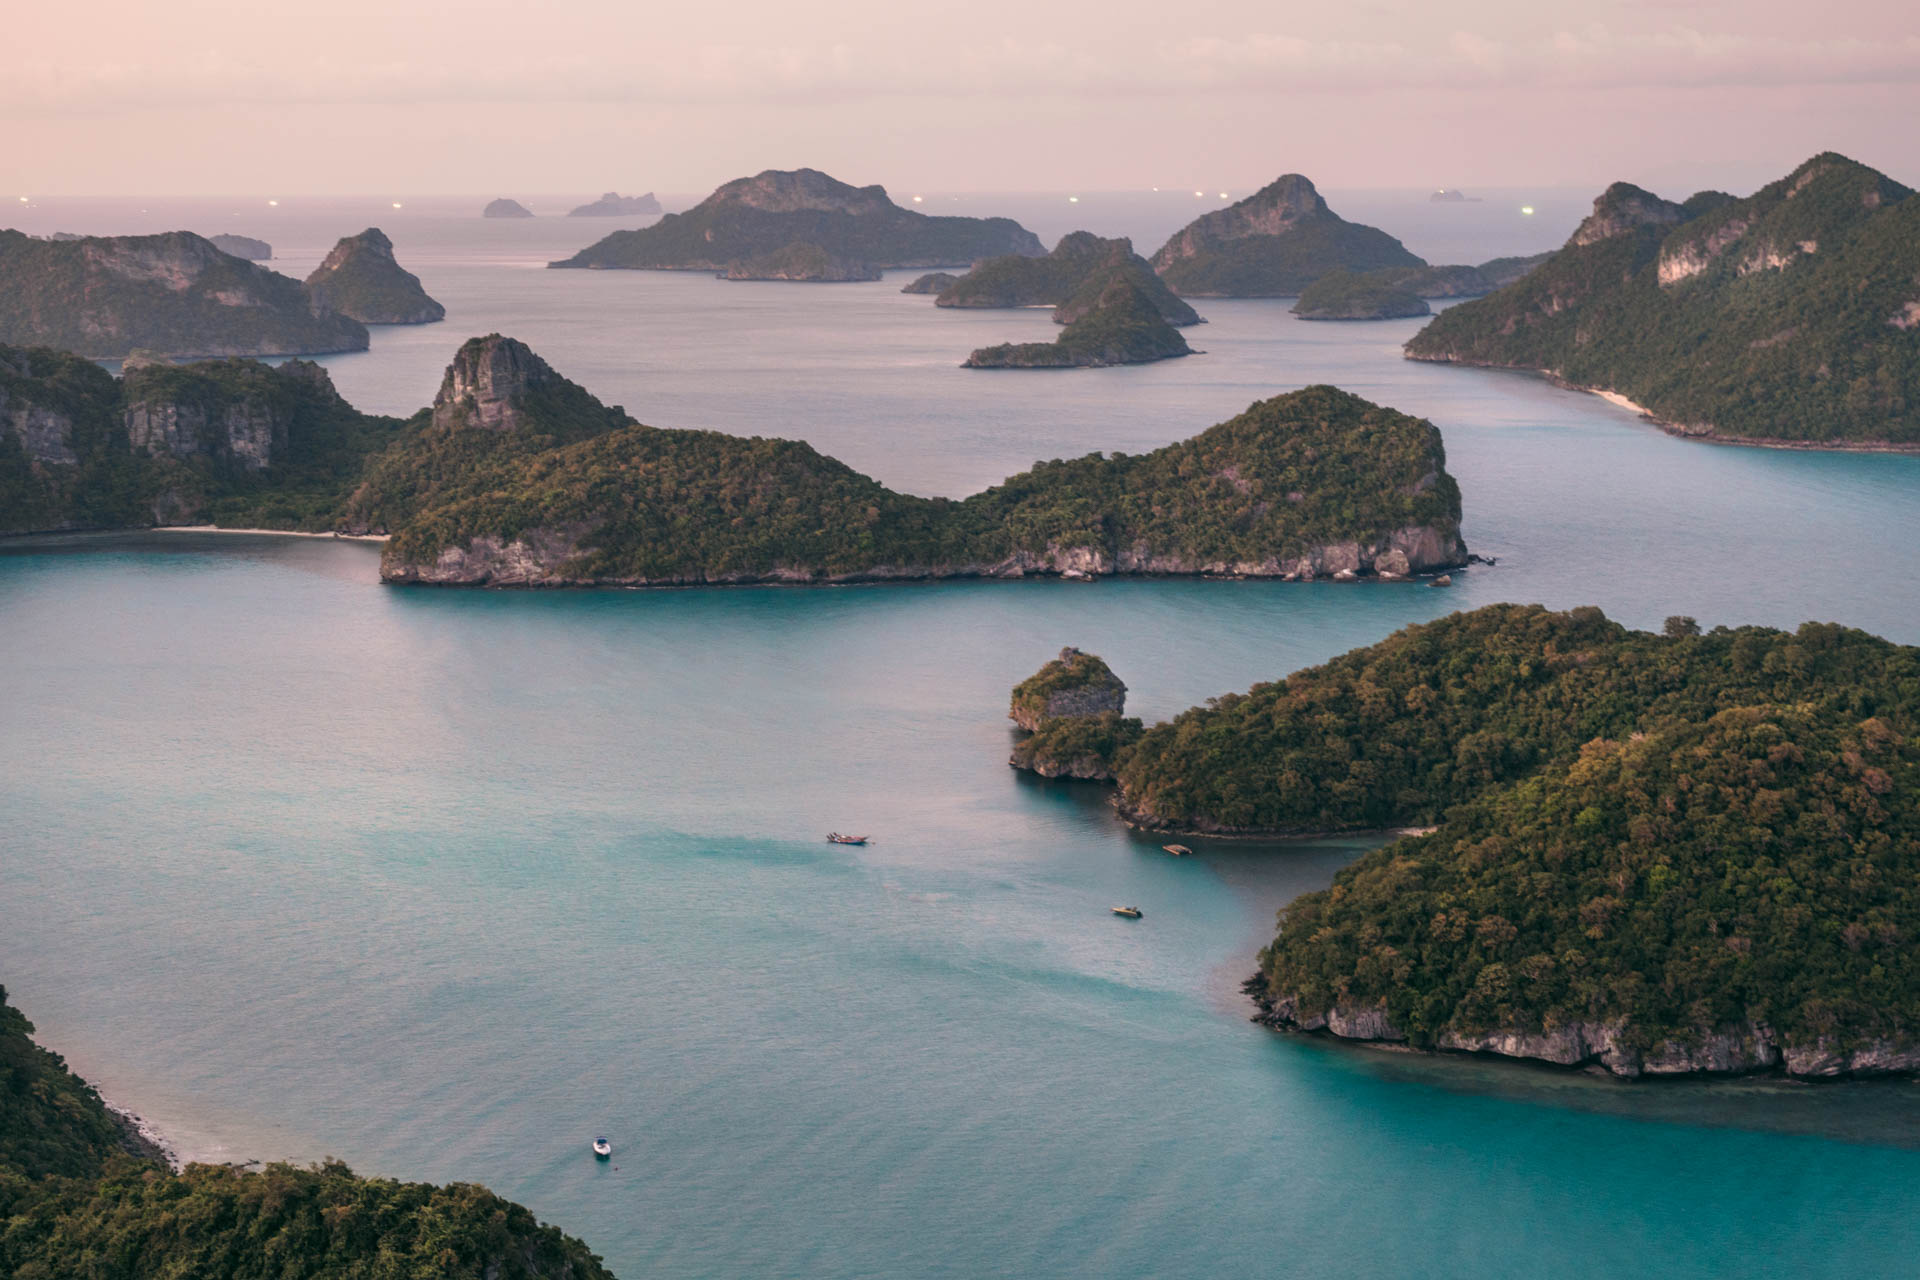 Ang Thong National Marine Park: Complete Travel Guide